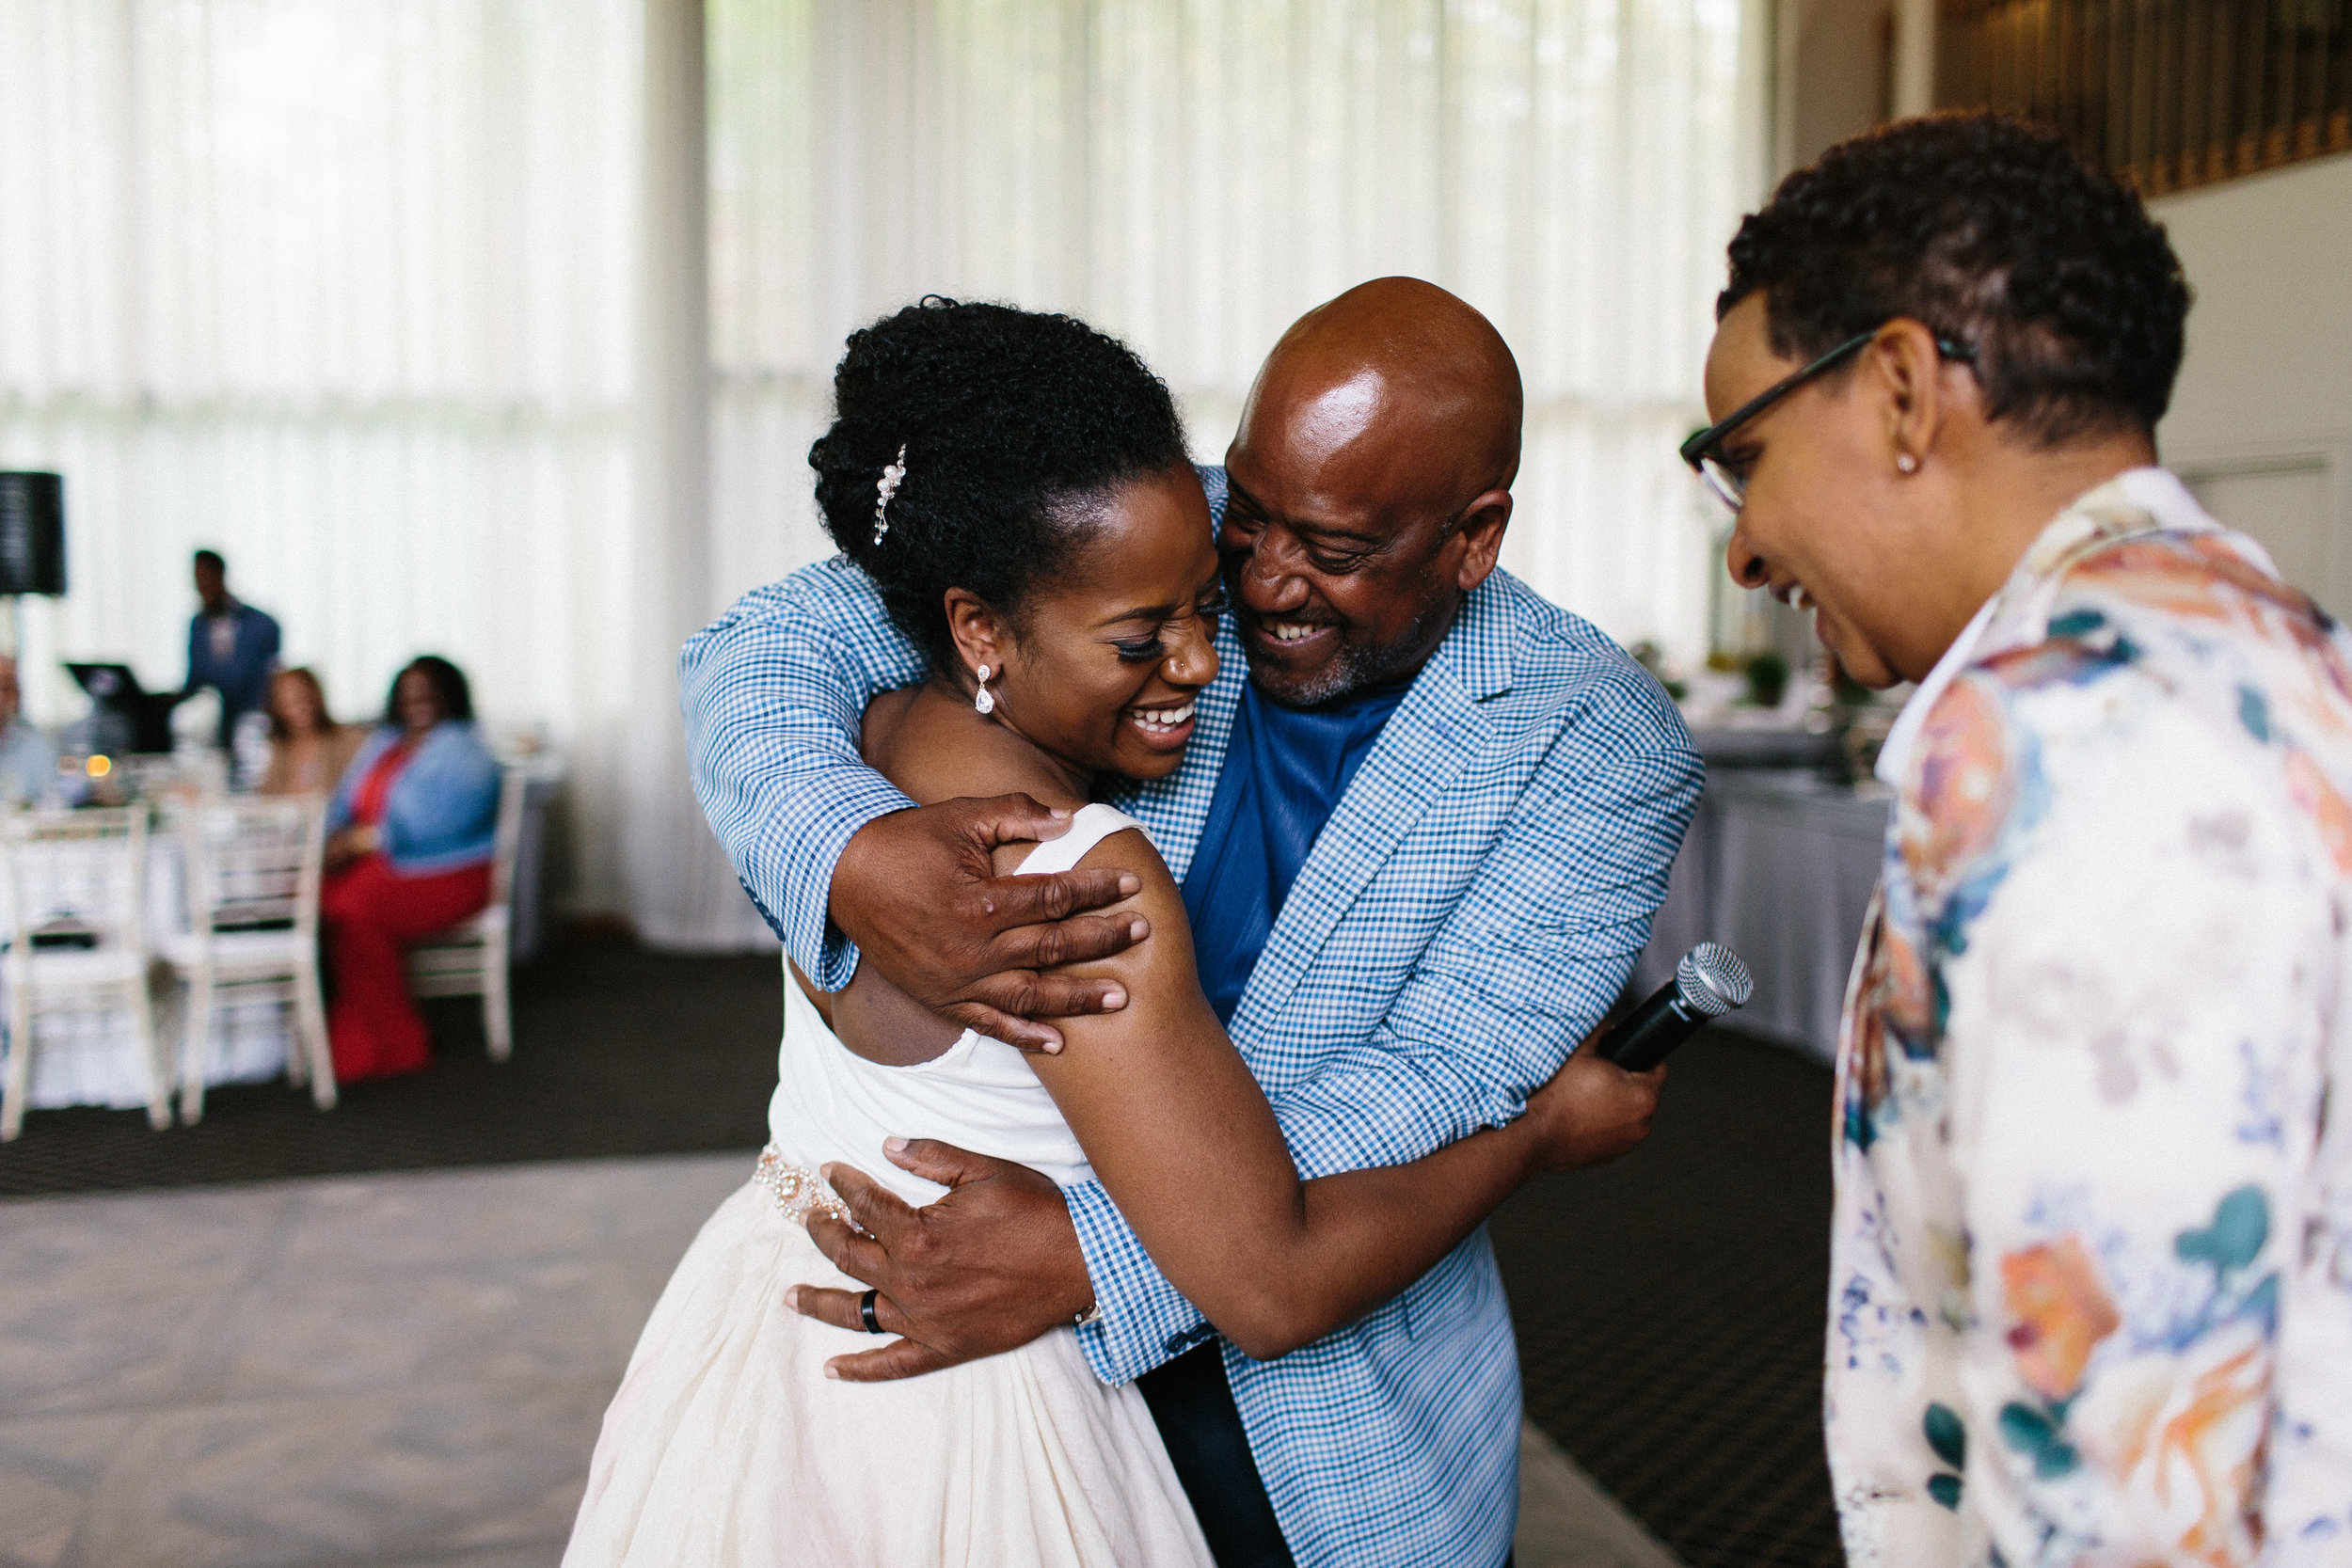 the_atrium_wedding_atlanta_norcross_lifestyle_photographers_lgbtq_1395.jpg